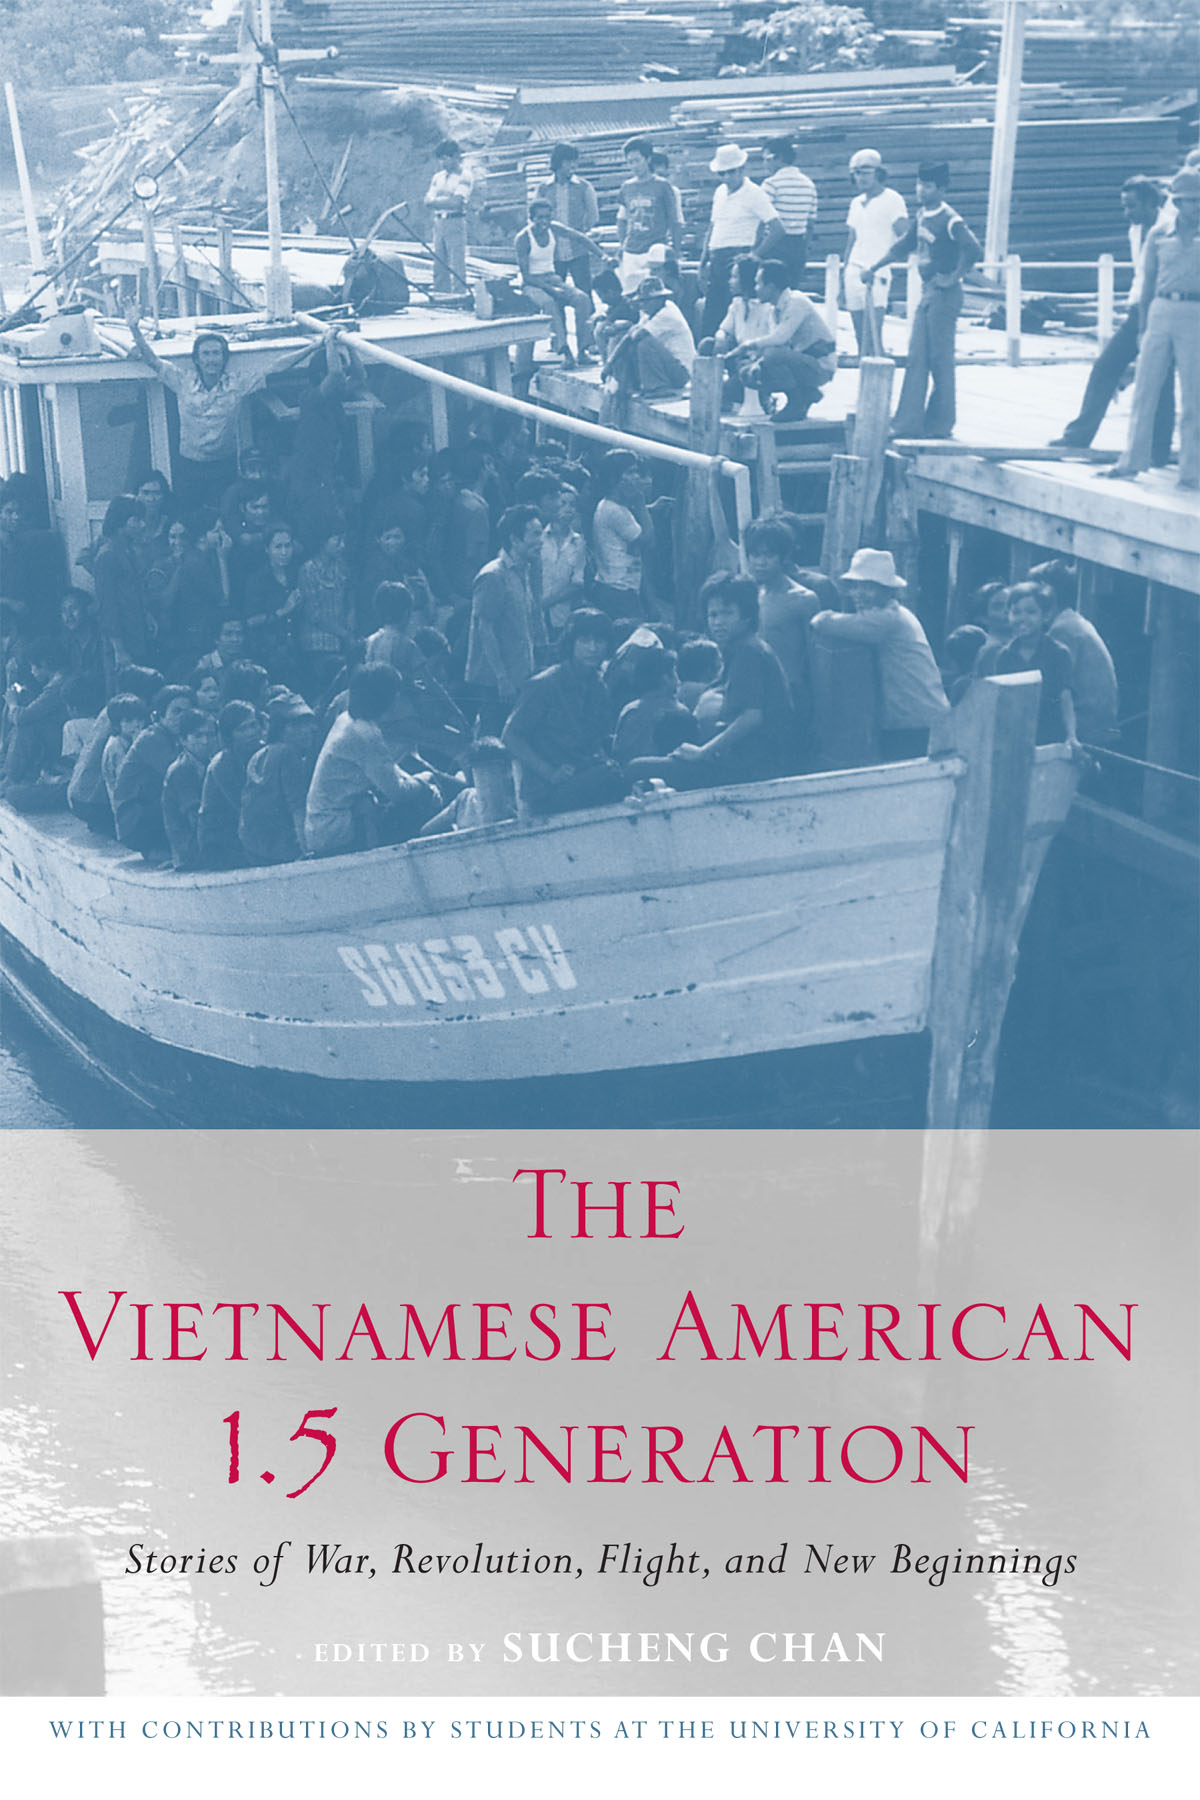 The Vietnamese American 1.5 Generation